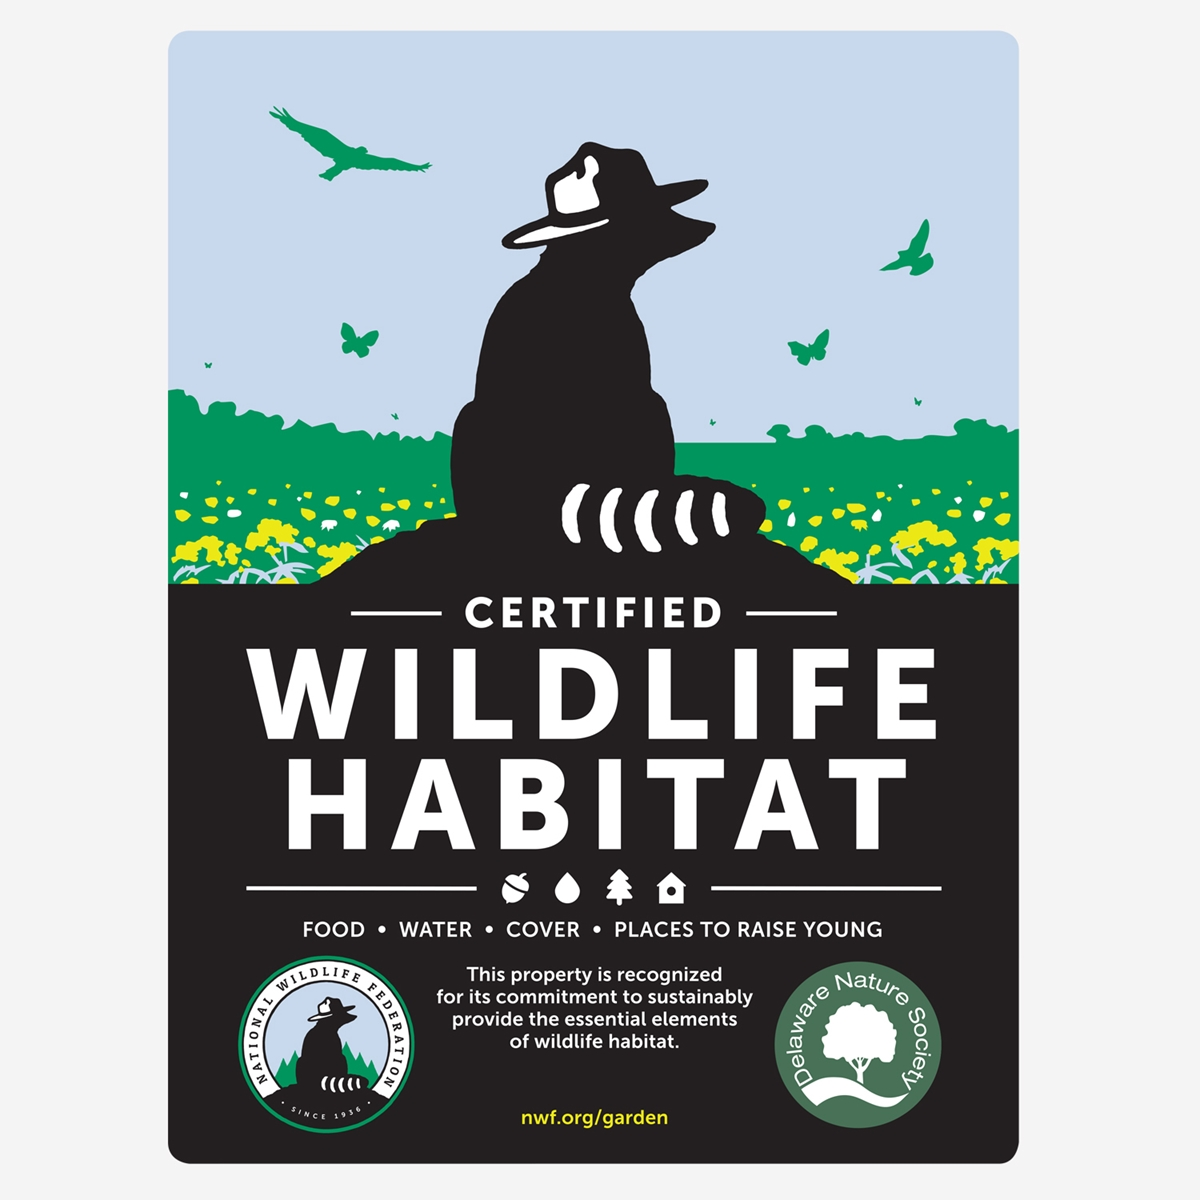 Delaware Wildlife Federation Certified Wildlife Habitat Sign